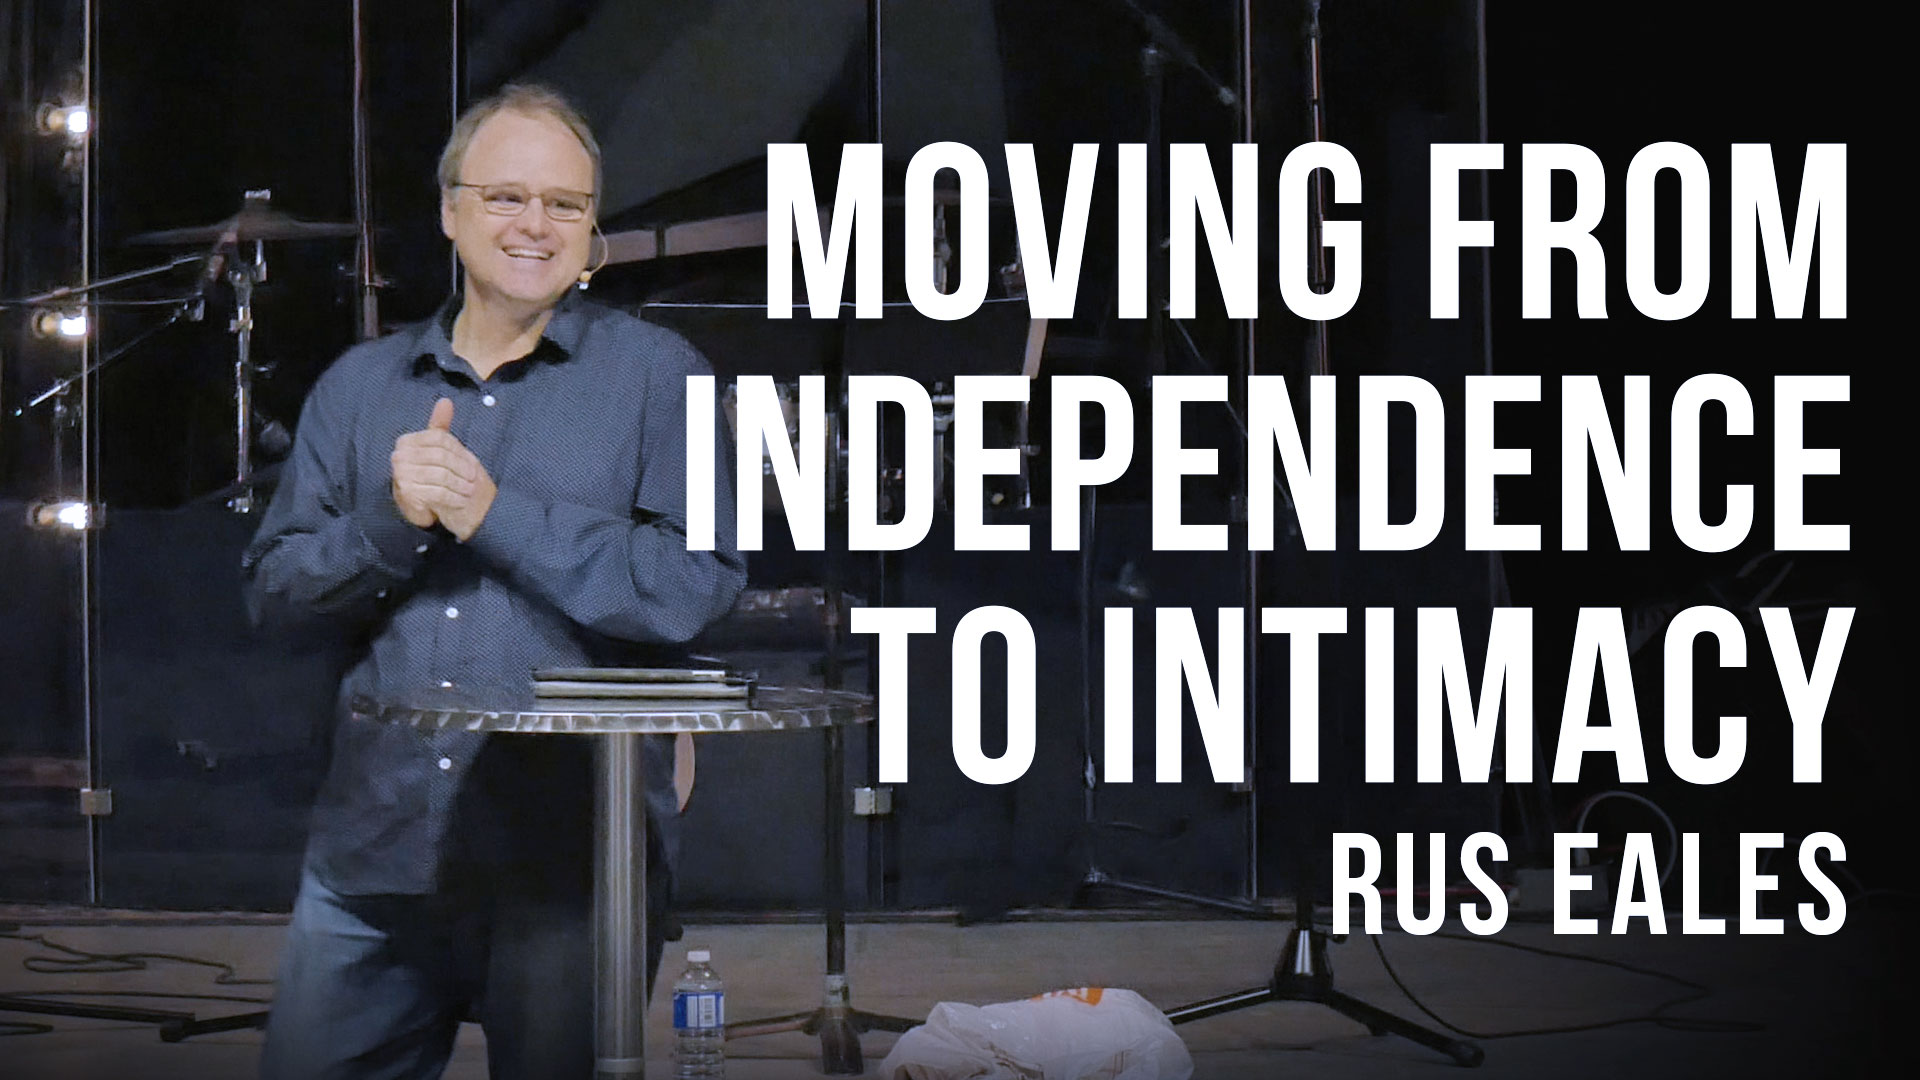 Moving from Independence to Intimacy